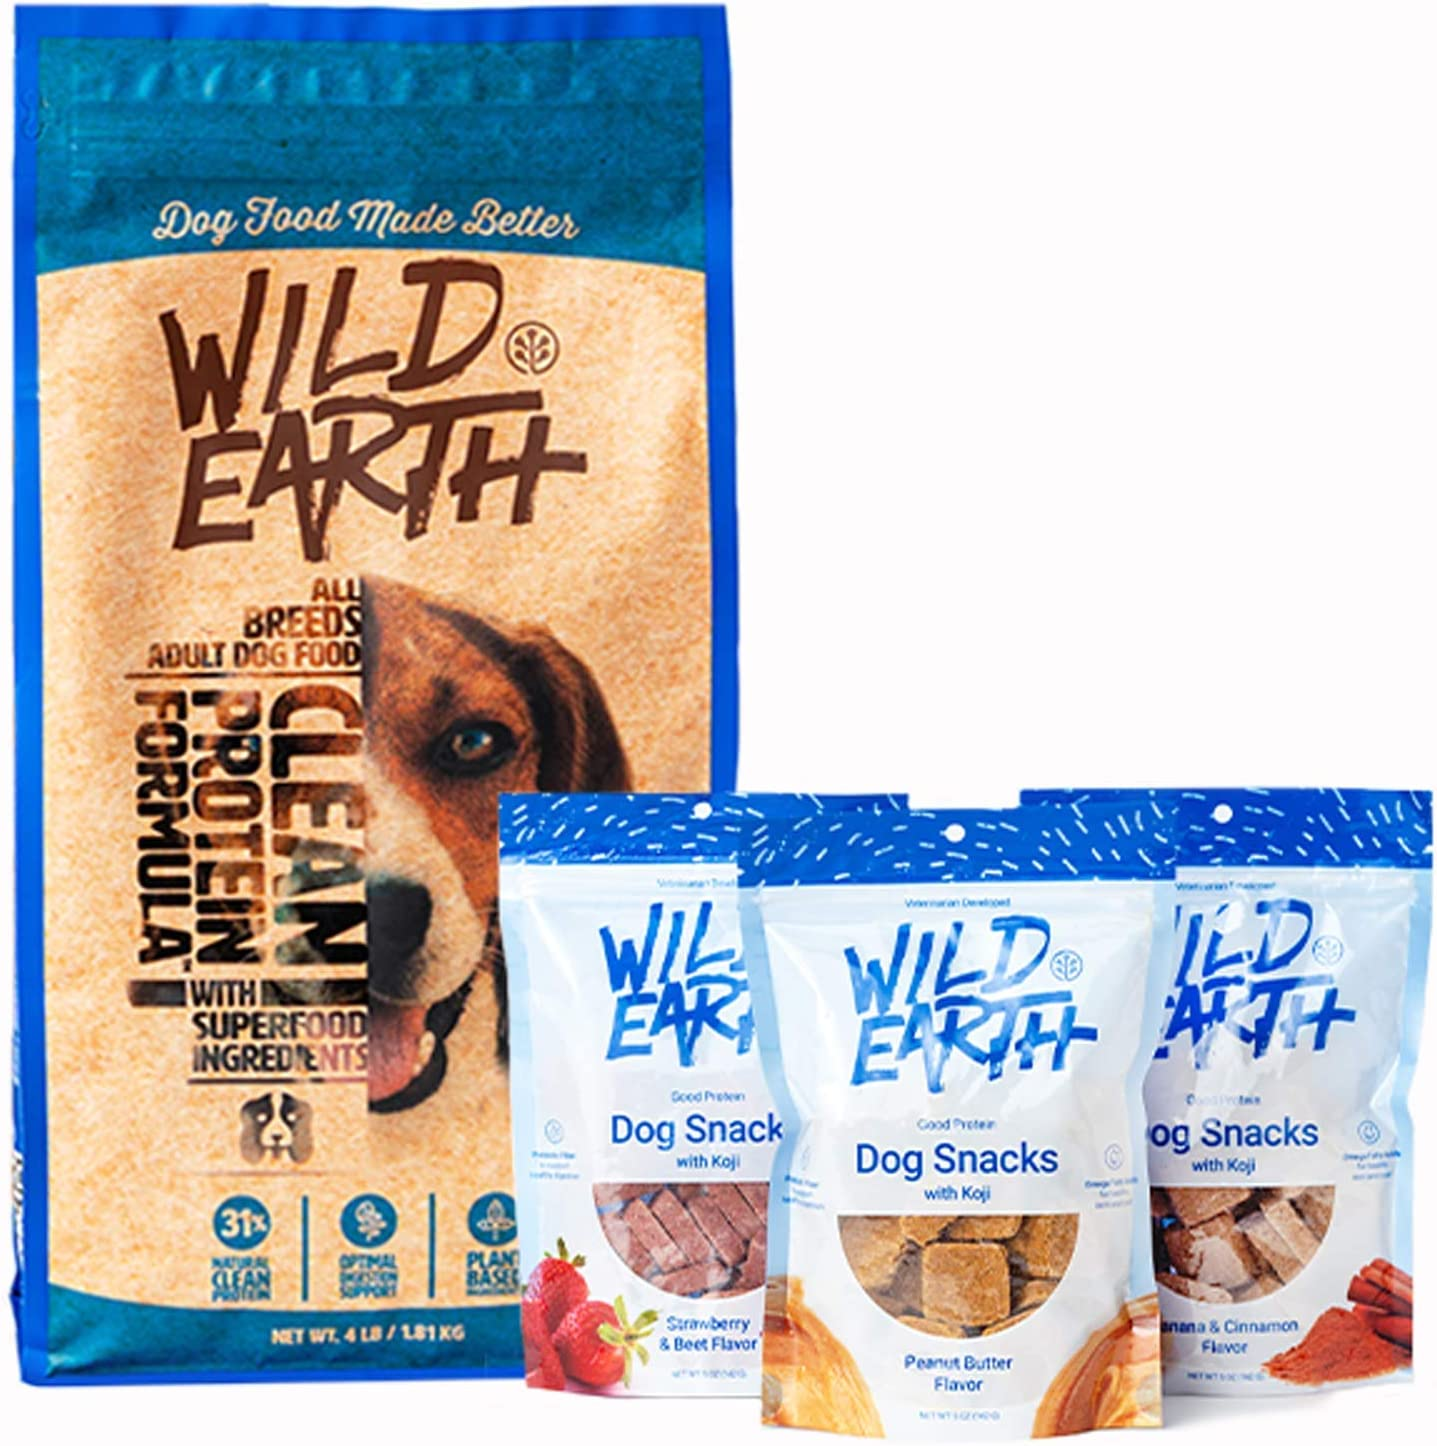 Wild Earth Vegan High Protein Formula Dry Dog Food and Clean Protein Dog Treats (Variety Pack)